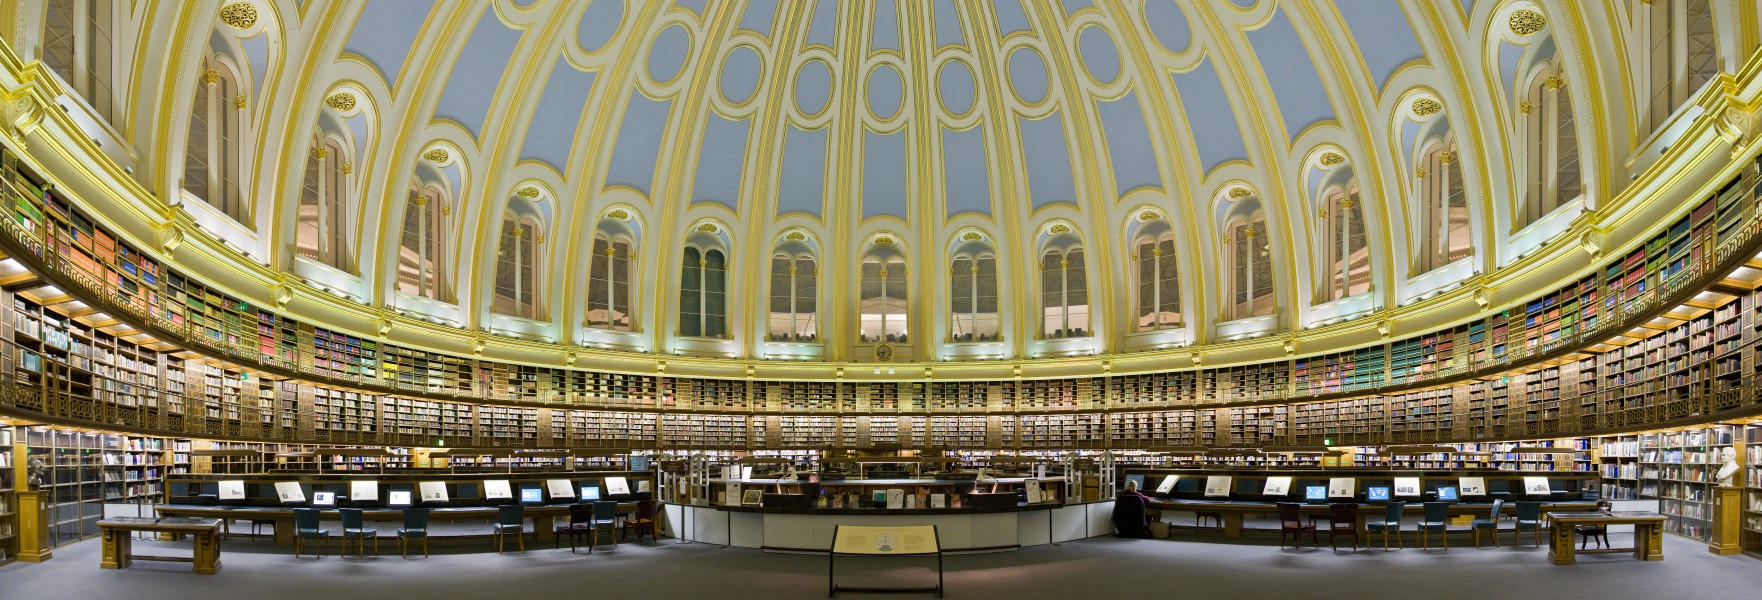 British Museum Reading Room Panorama Feb 2006